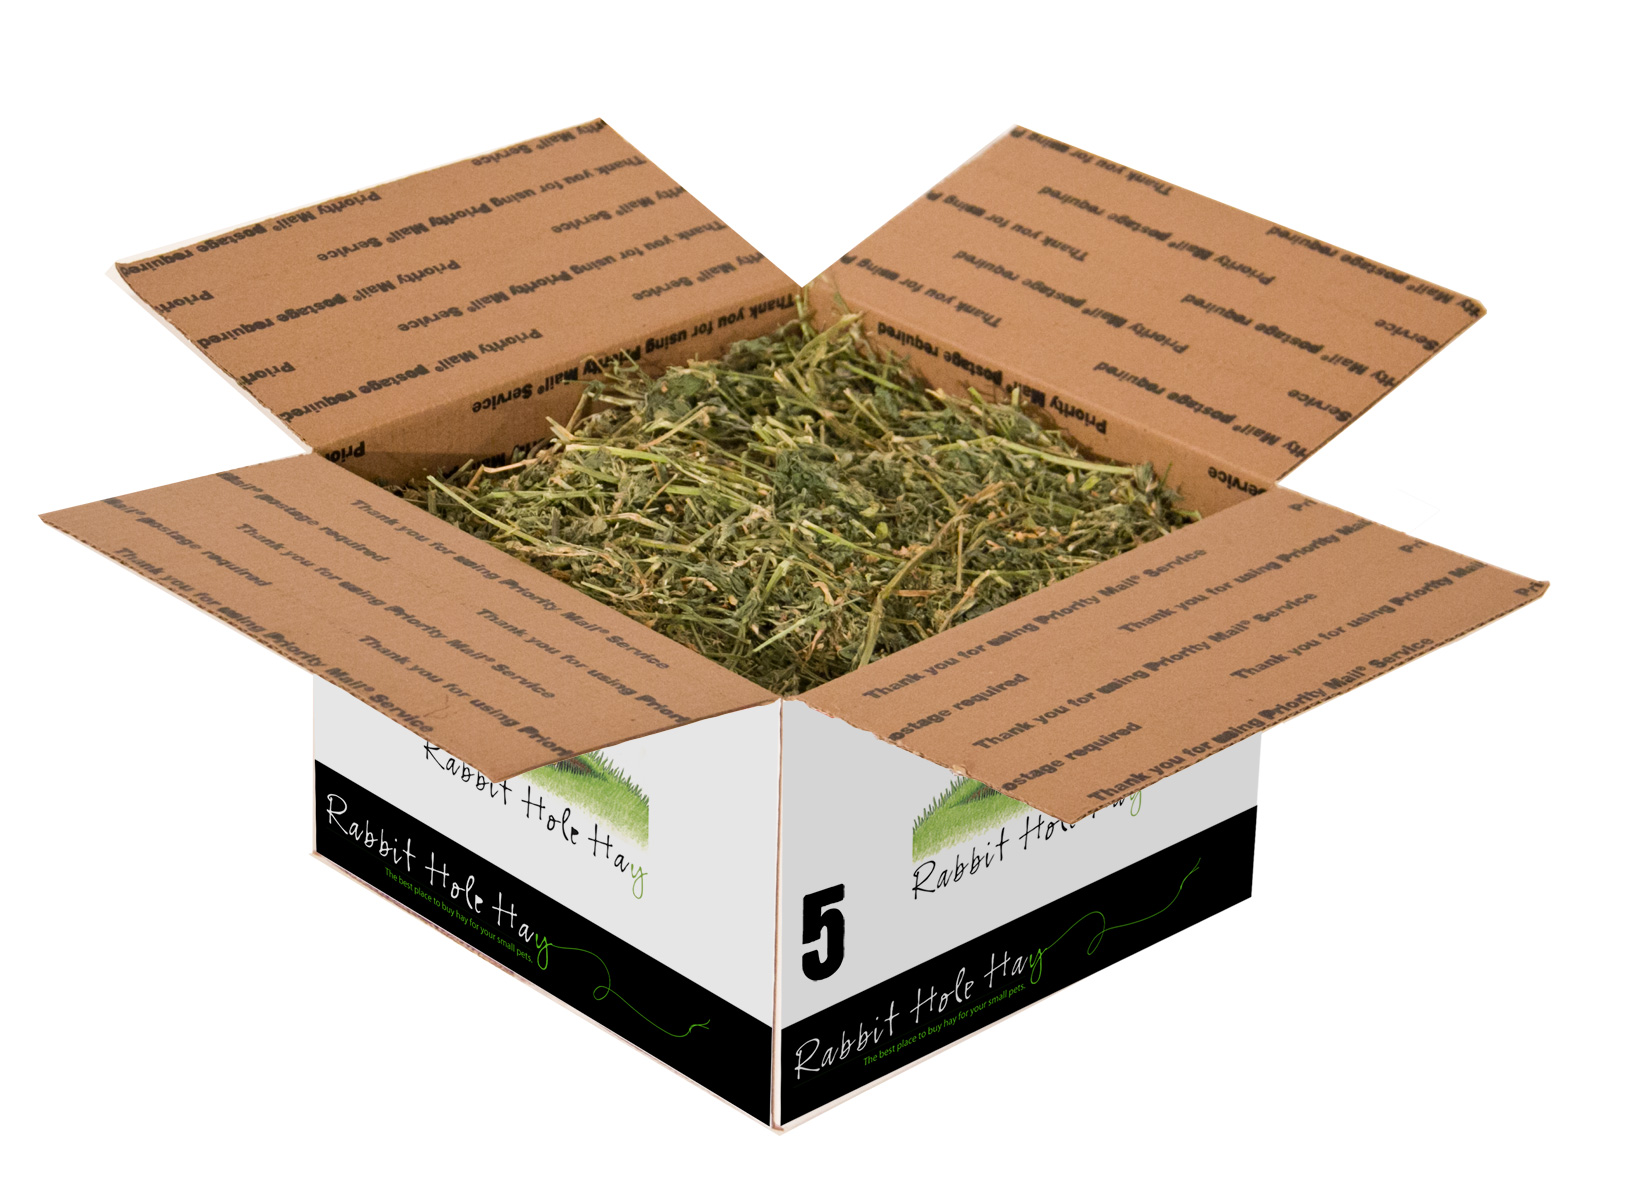 Rabbit Hole Hay Offers Online Sales of Quality, Farm Fresh Hay for Rabbits and Other Small Pets